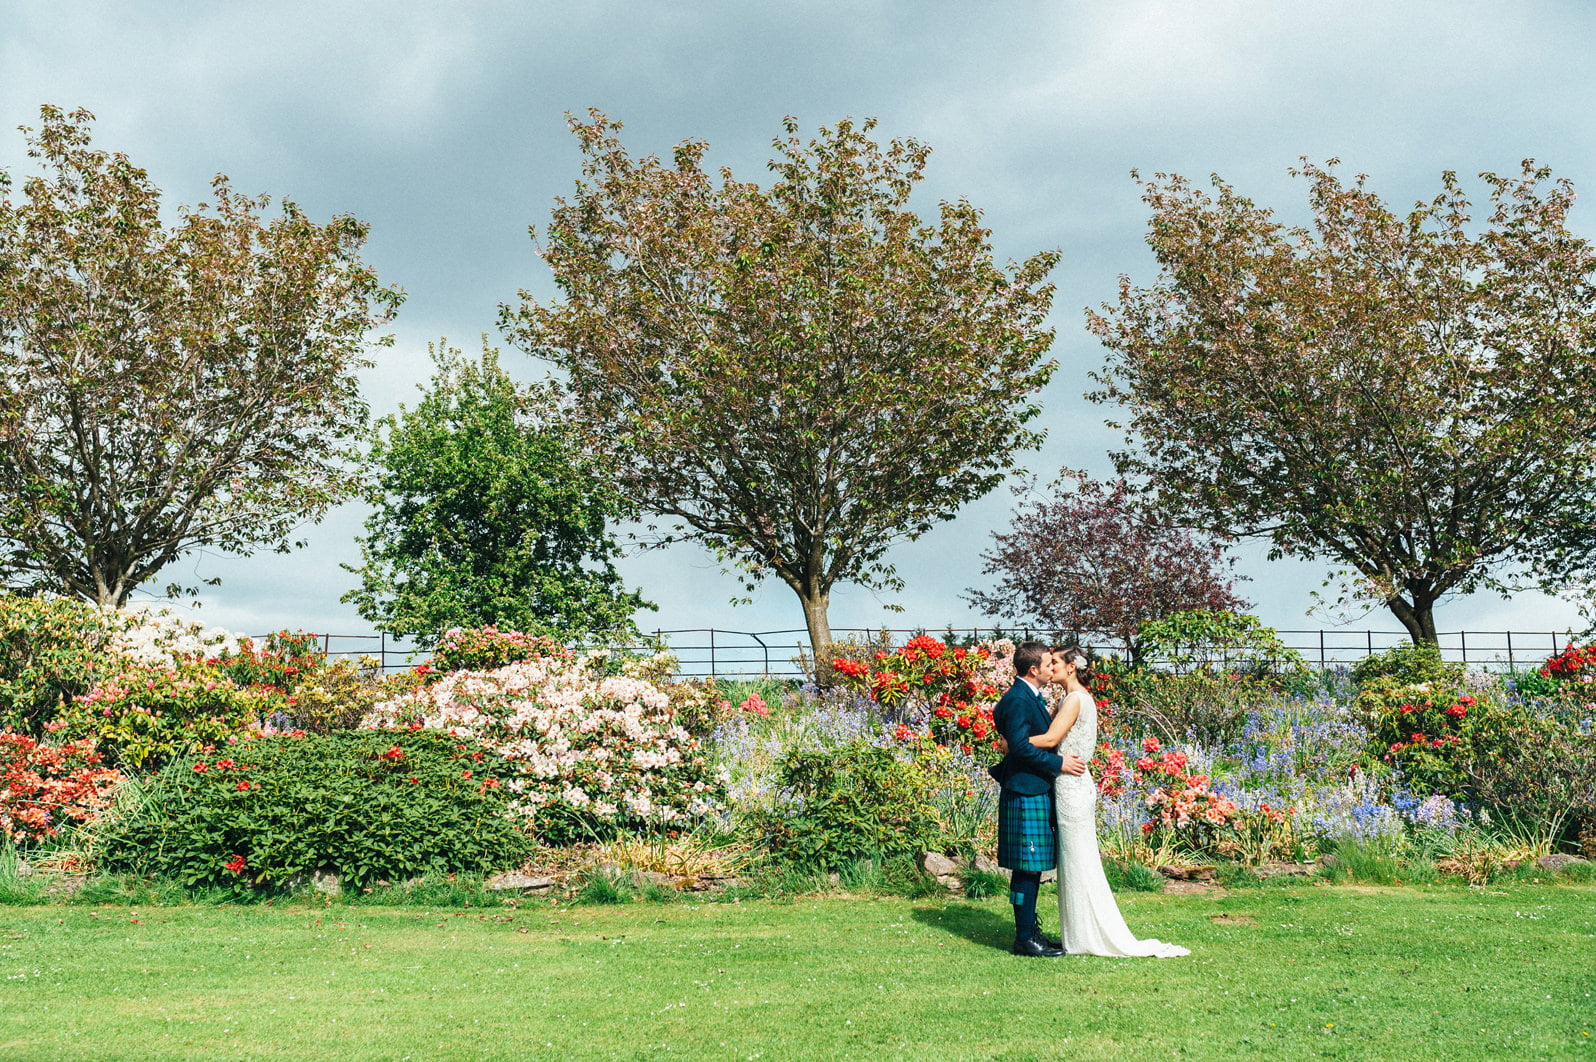 Aberdeen wedding photographers; donna murray photography